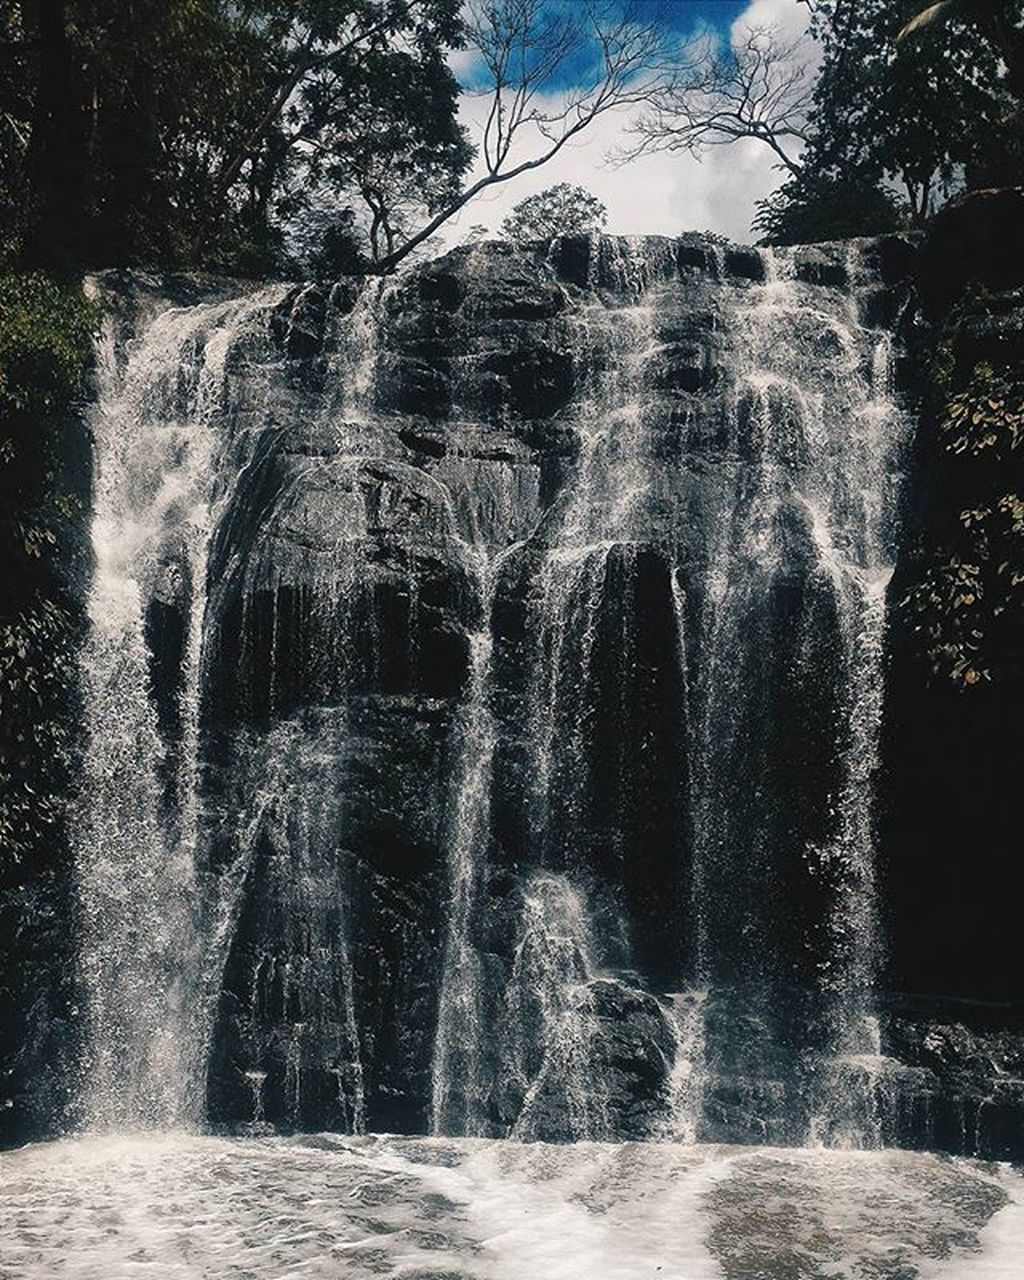 motion, water, waterfall, long exposure, tree, beauty in nature, nature, outdoors, day, no people, scenics, forest, spraying, sky